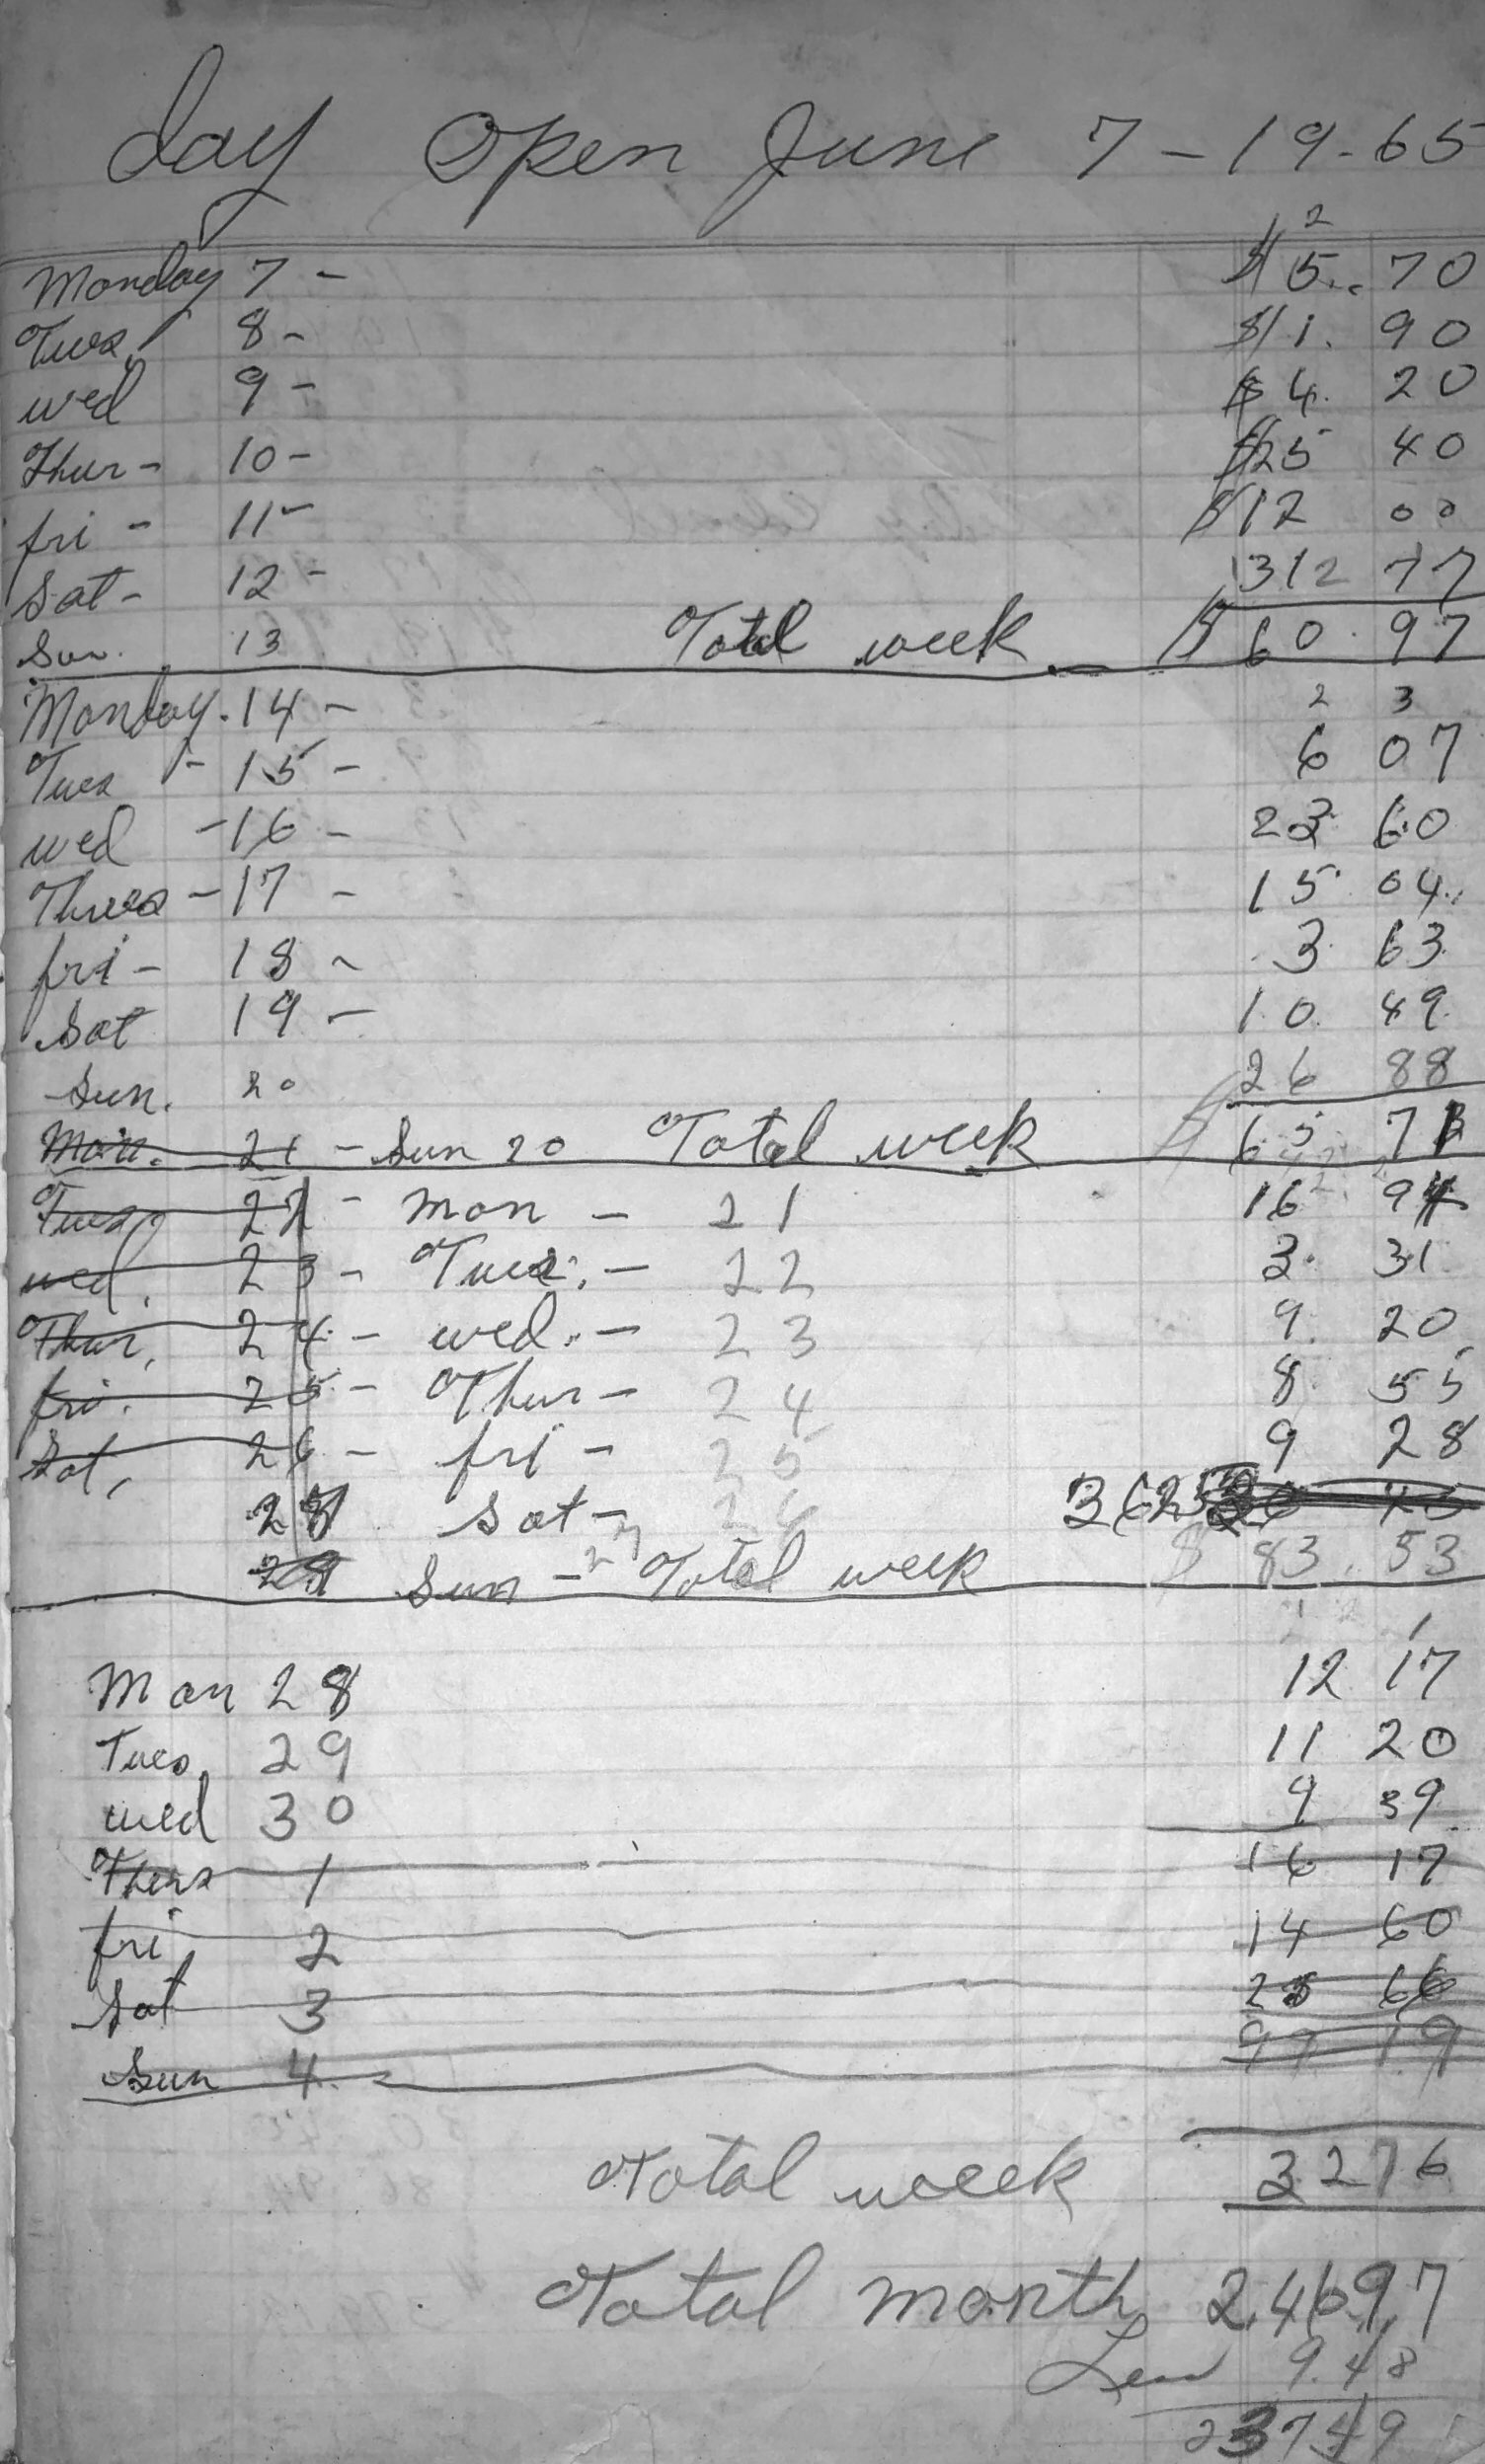 Our first month! Who knew you could get so rich fixing old shoes in 1965?